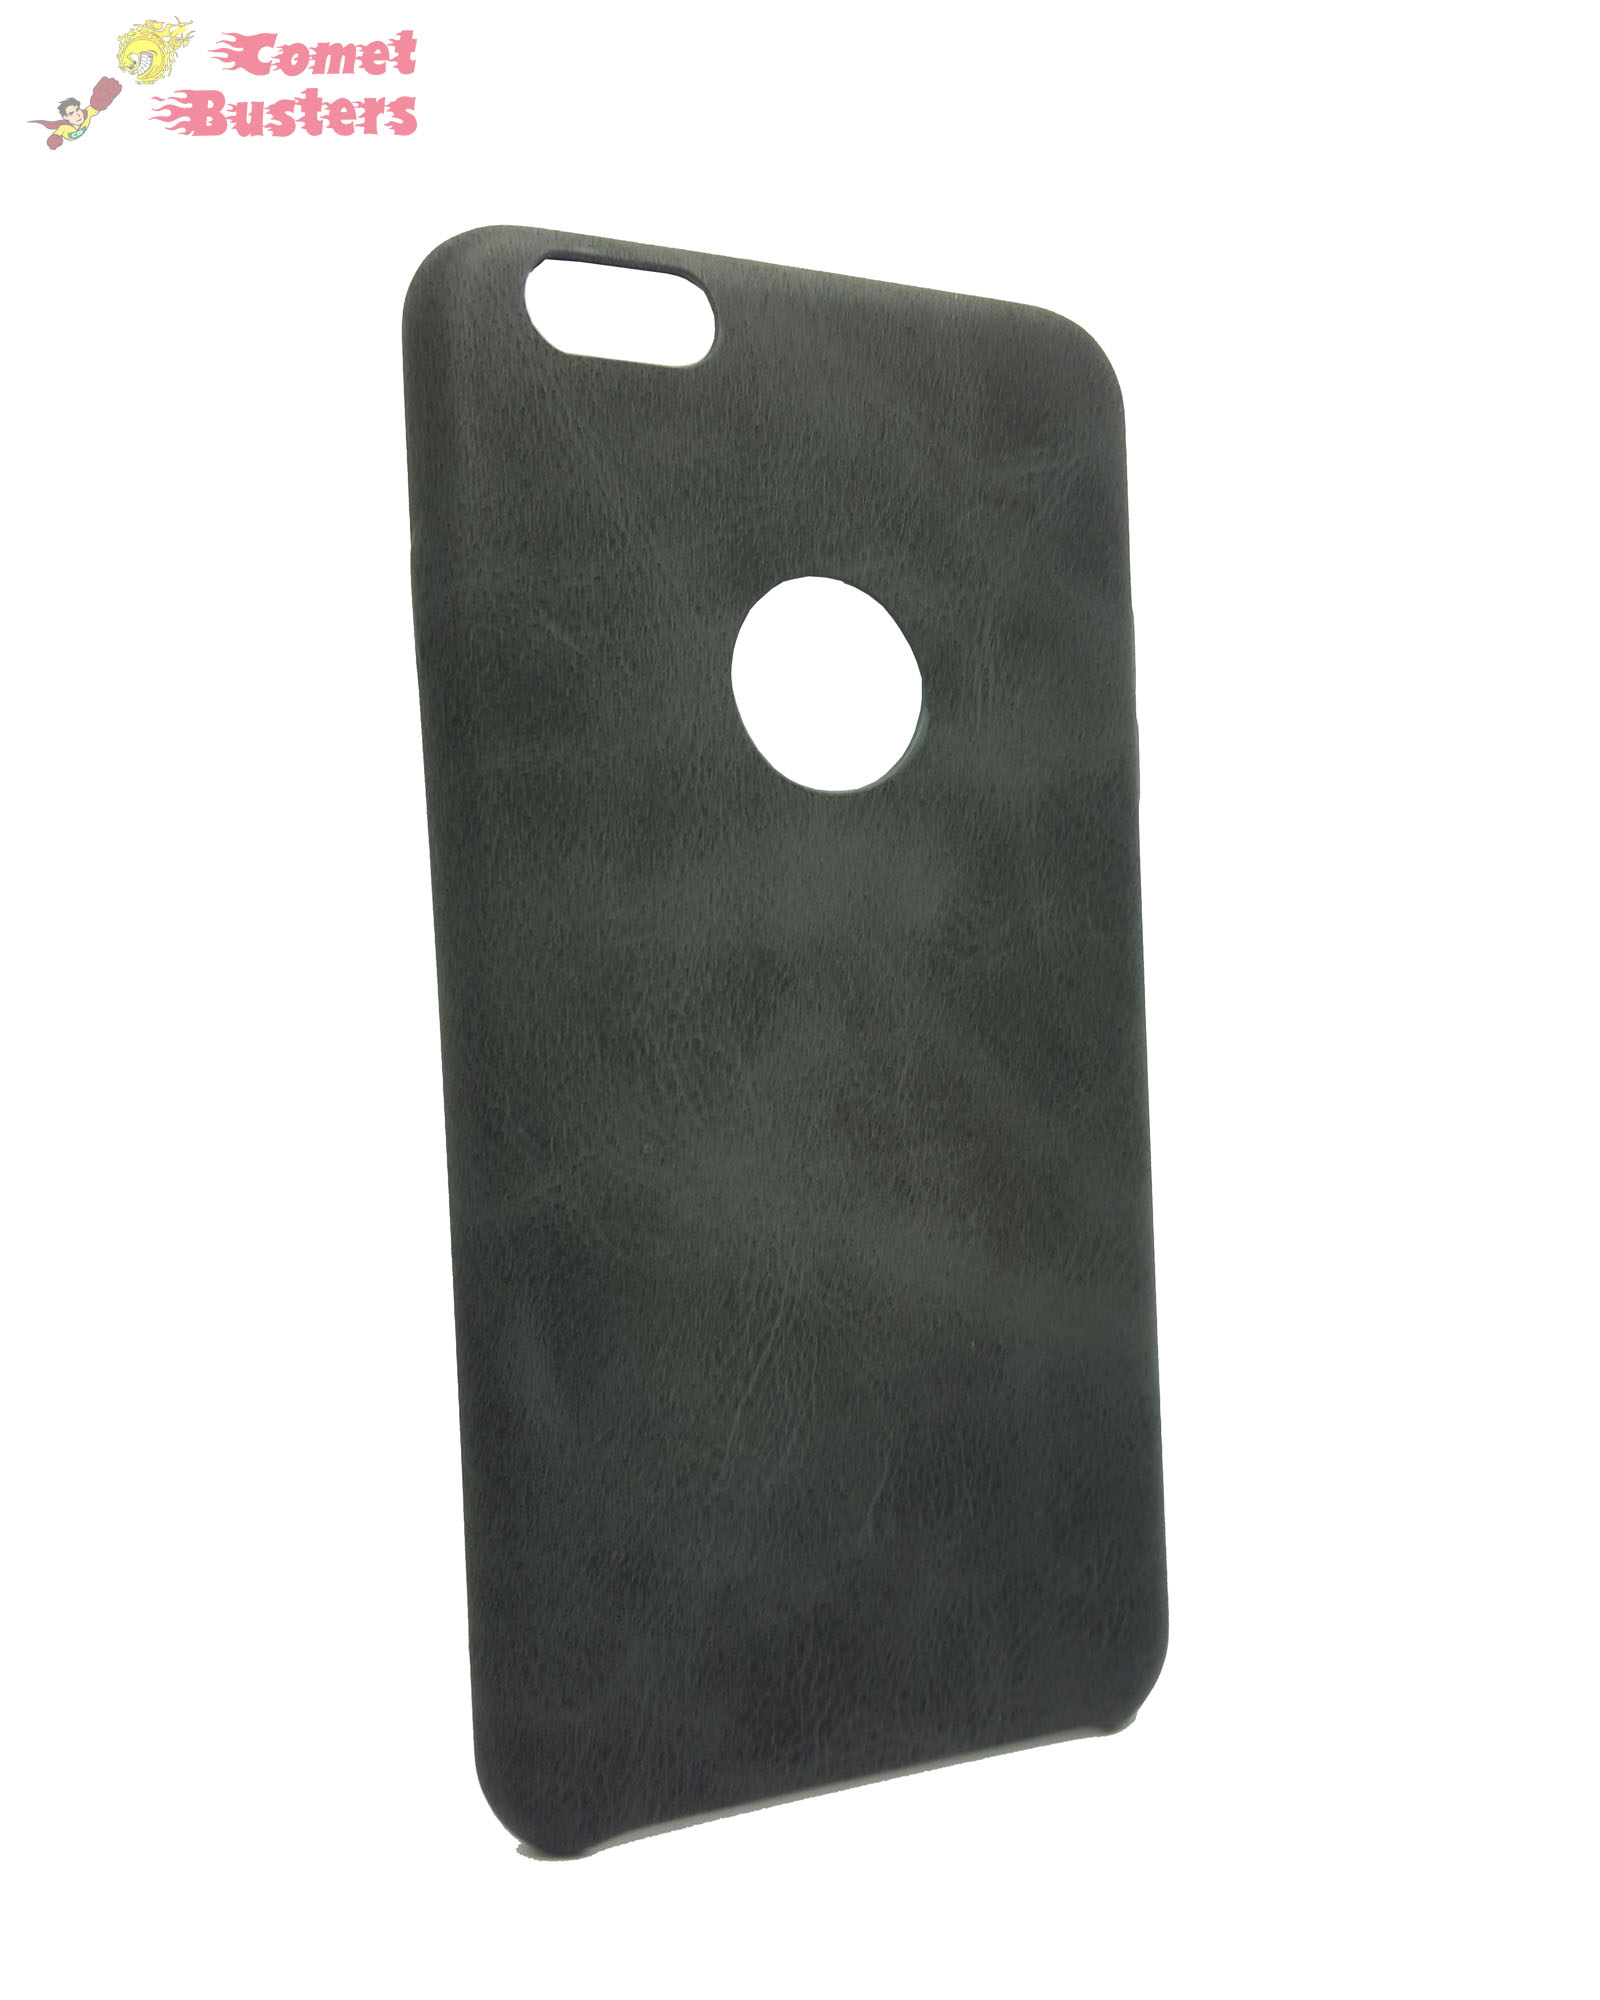 Apple iPhone 6 Plus Back Cover Case |Leather |